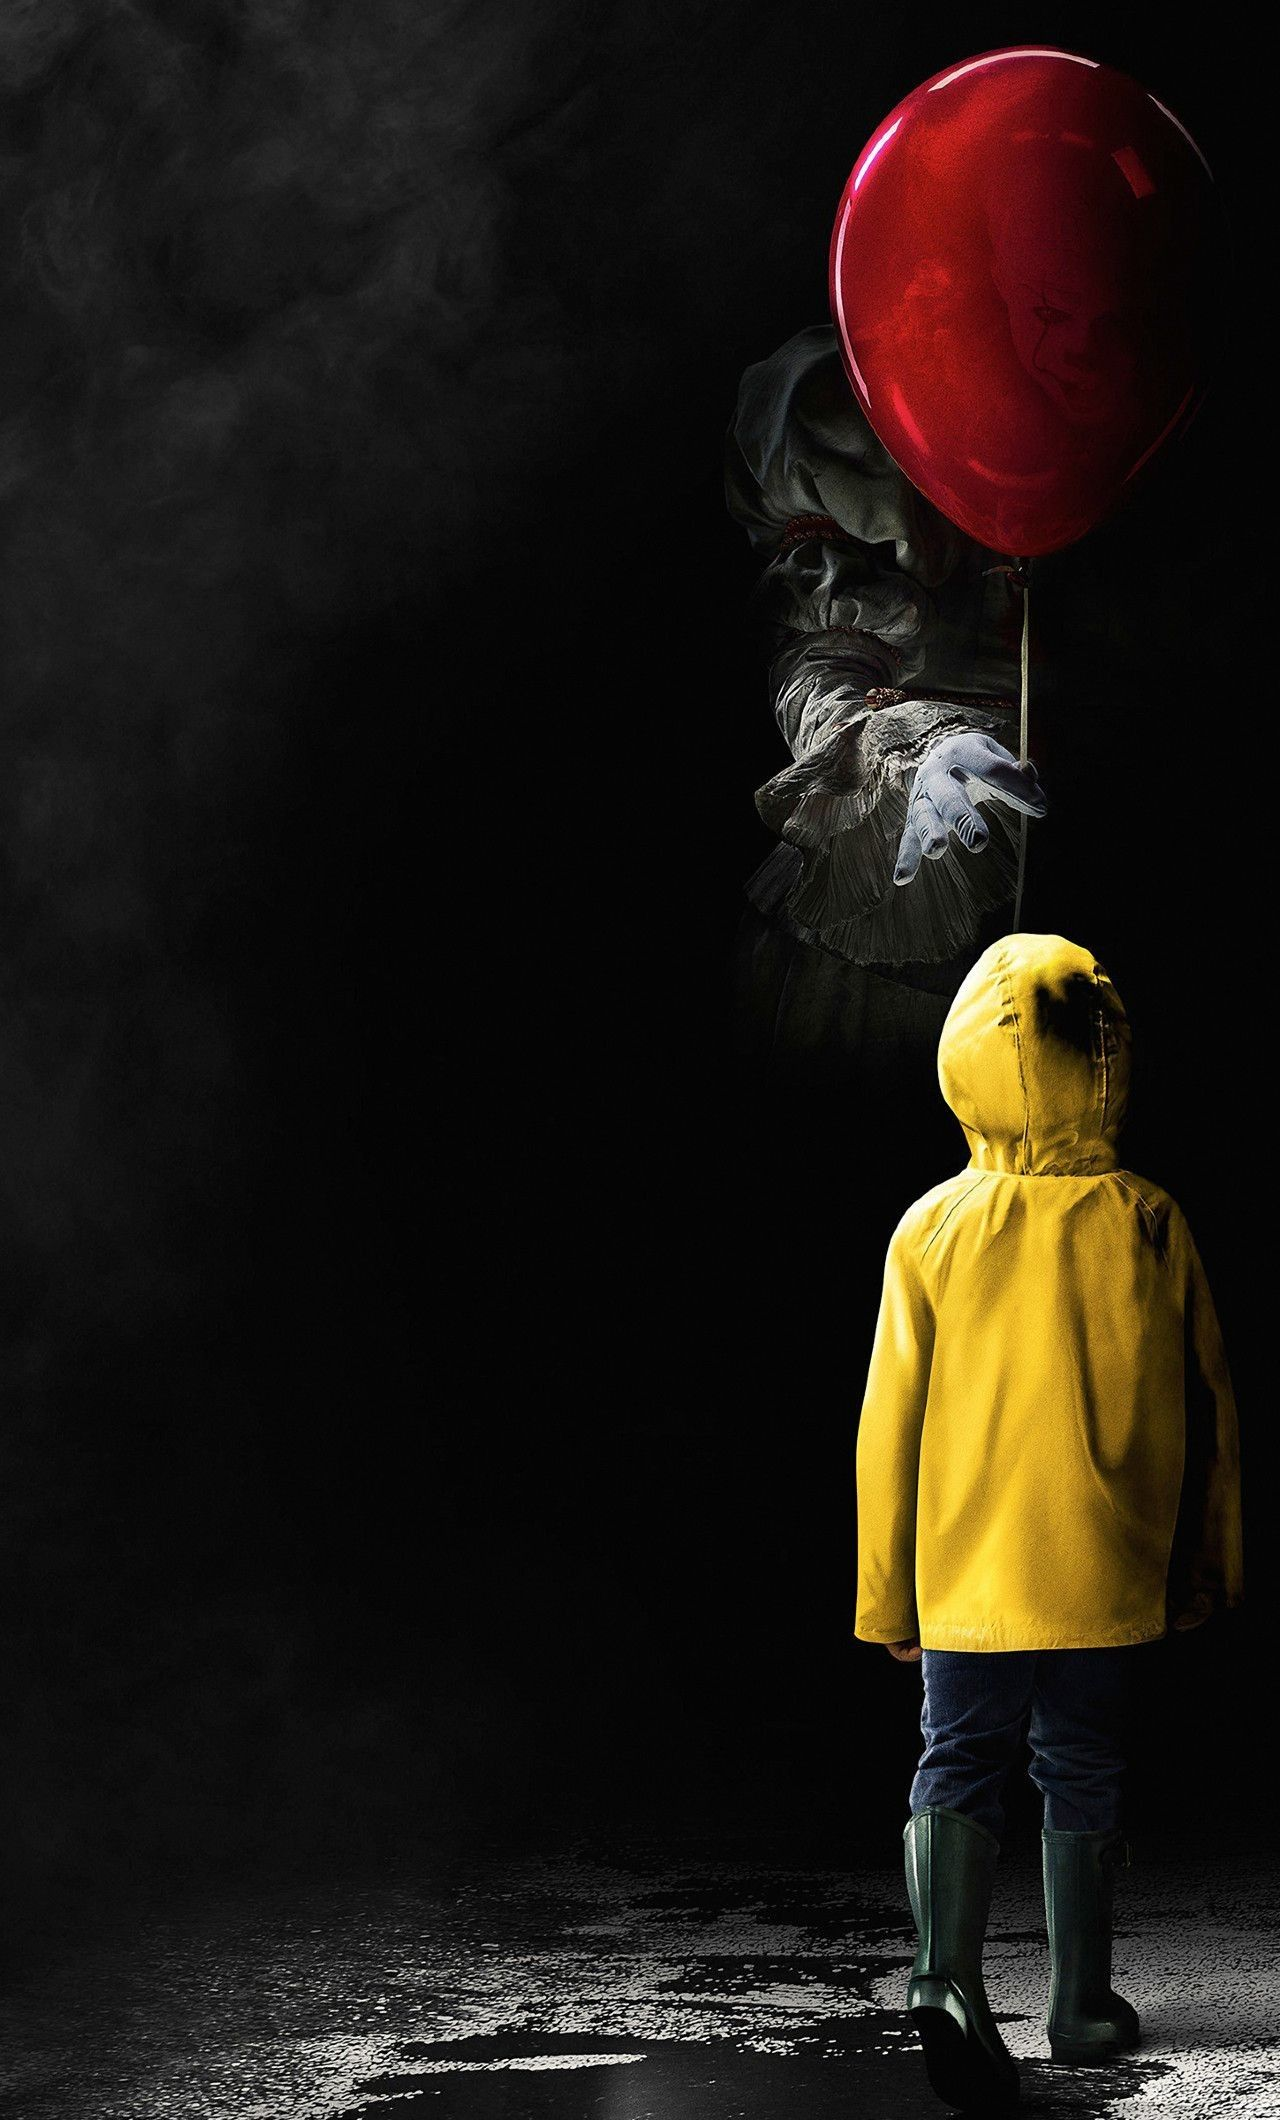 Pin By Mariana On Wallpaper In 2020 Scary Wallpaper Pennywise